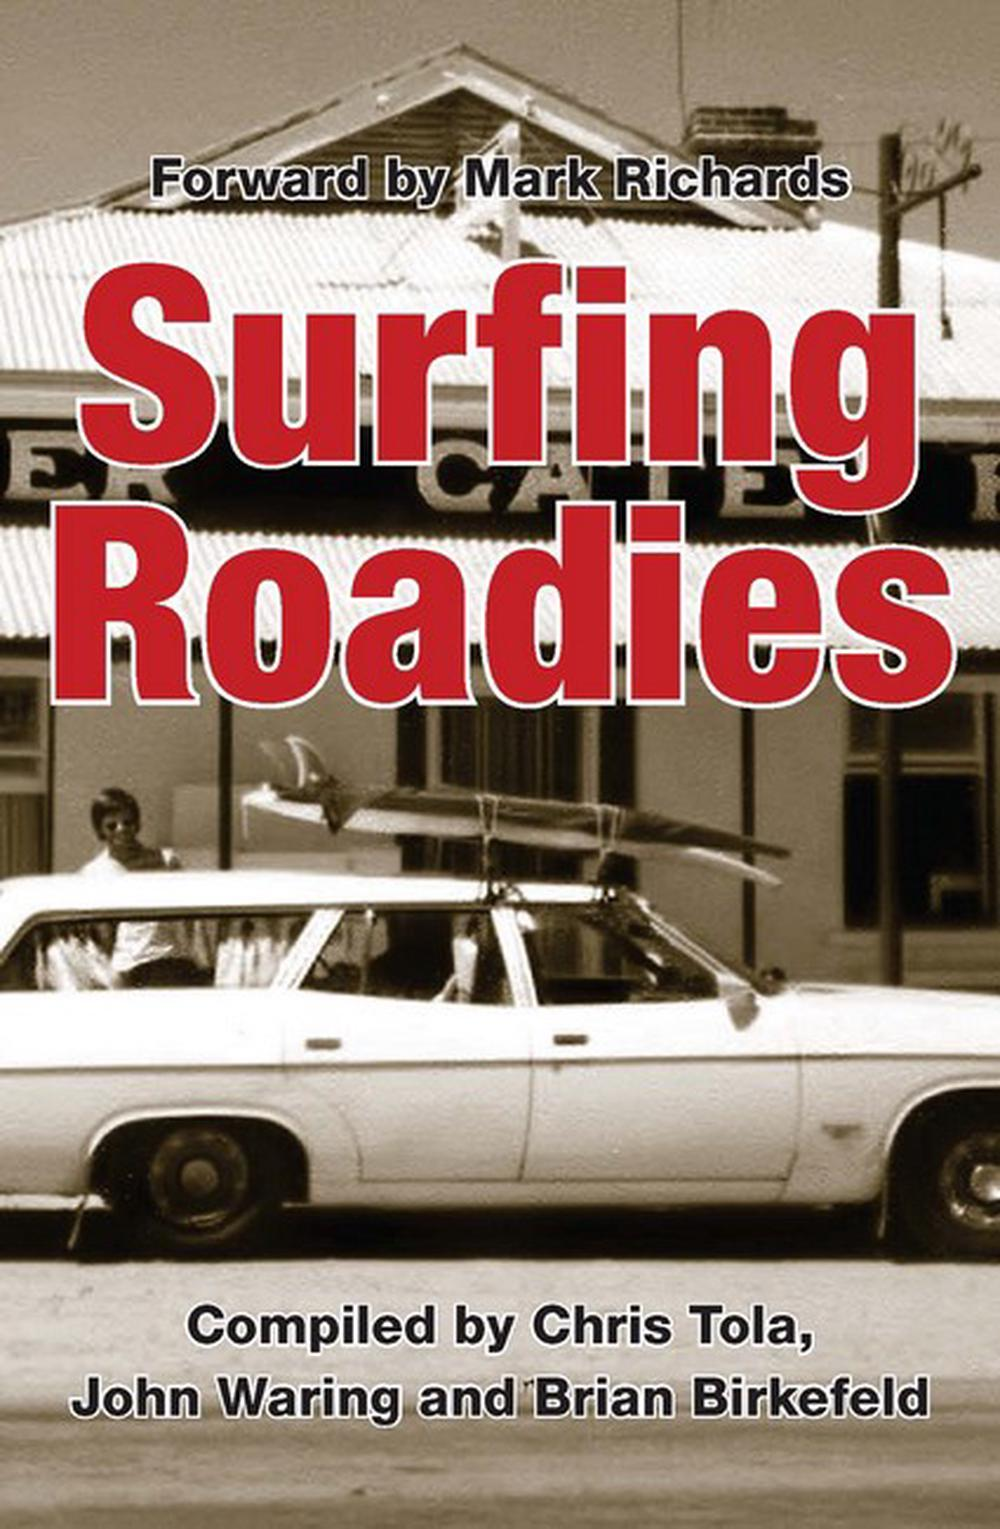 Surfing Roadies: Forward and Contribution from Mark Richards by Chris, Waring, J